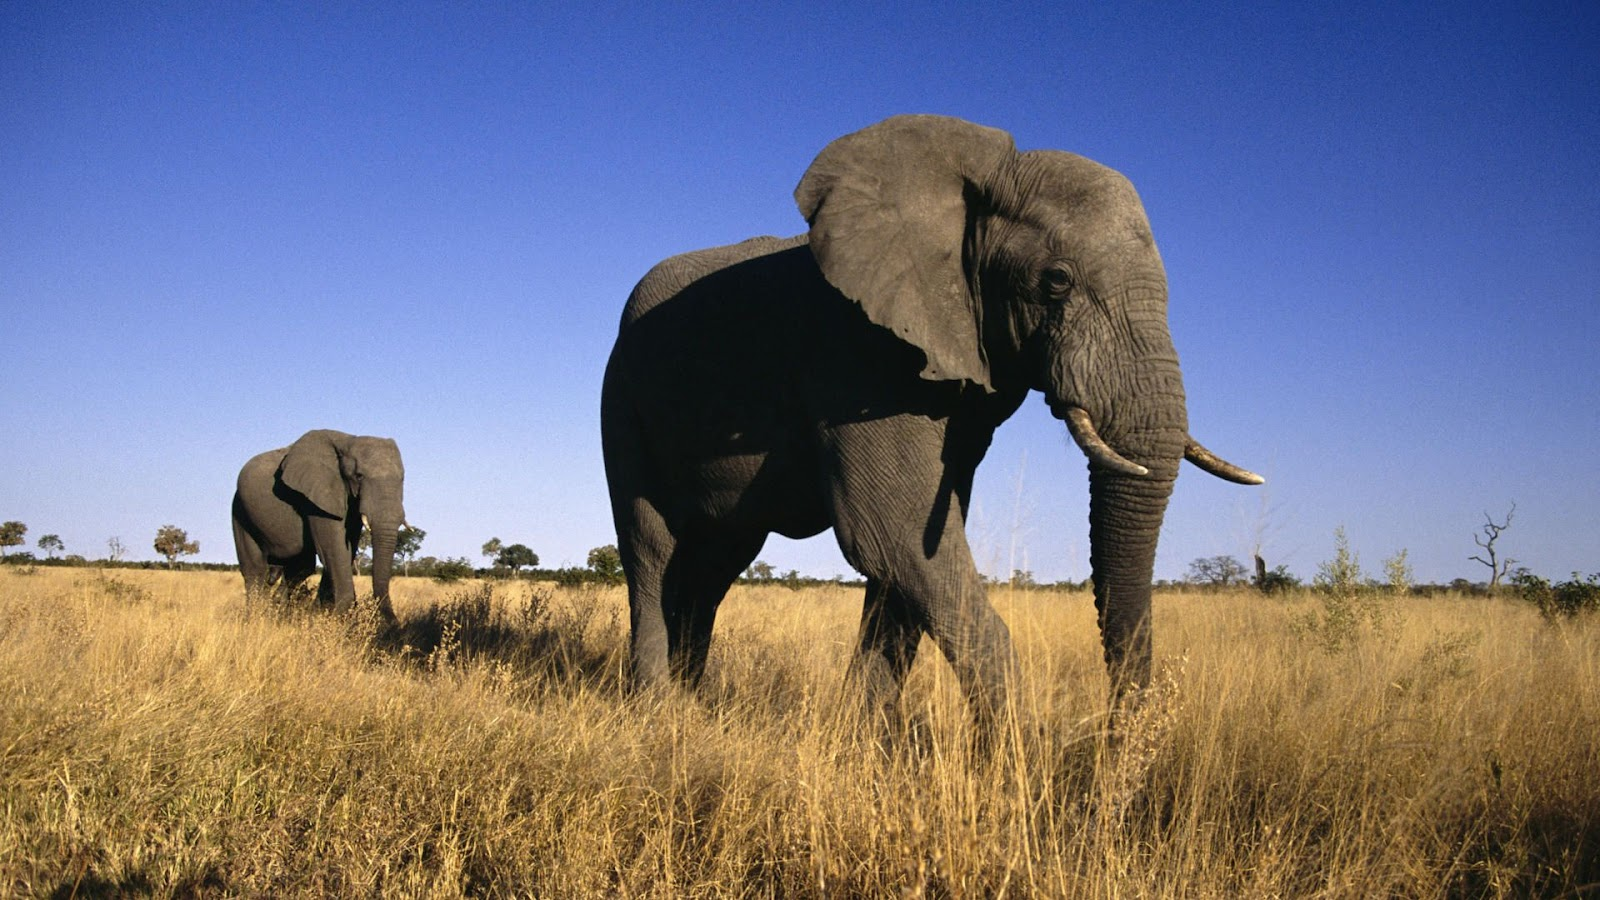 Wild elephants gather inexplicably, mourn death of